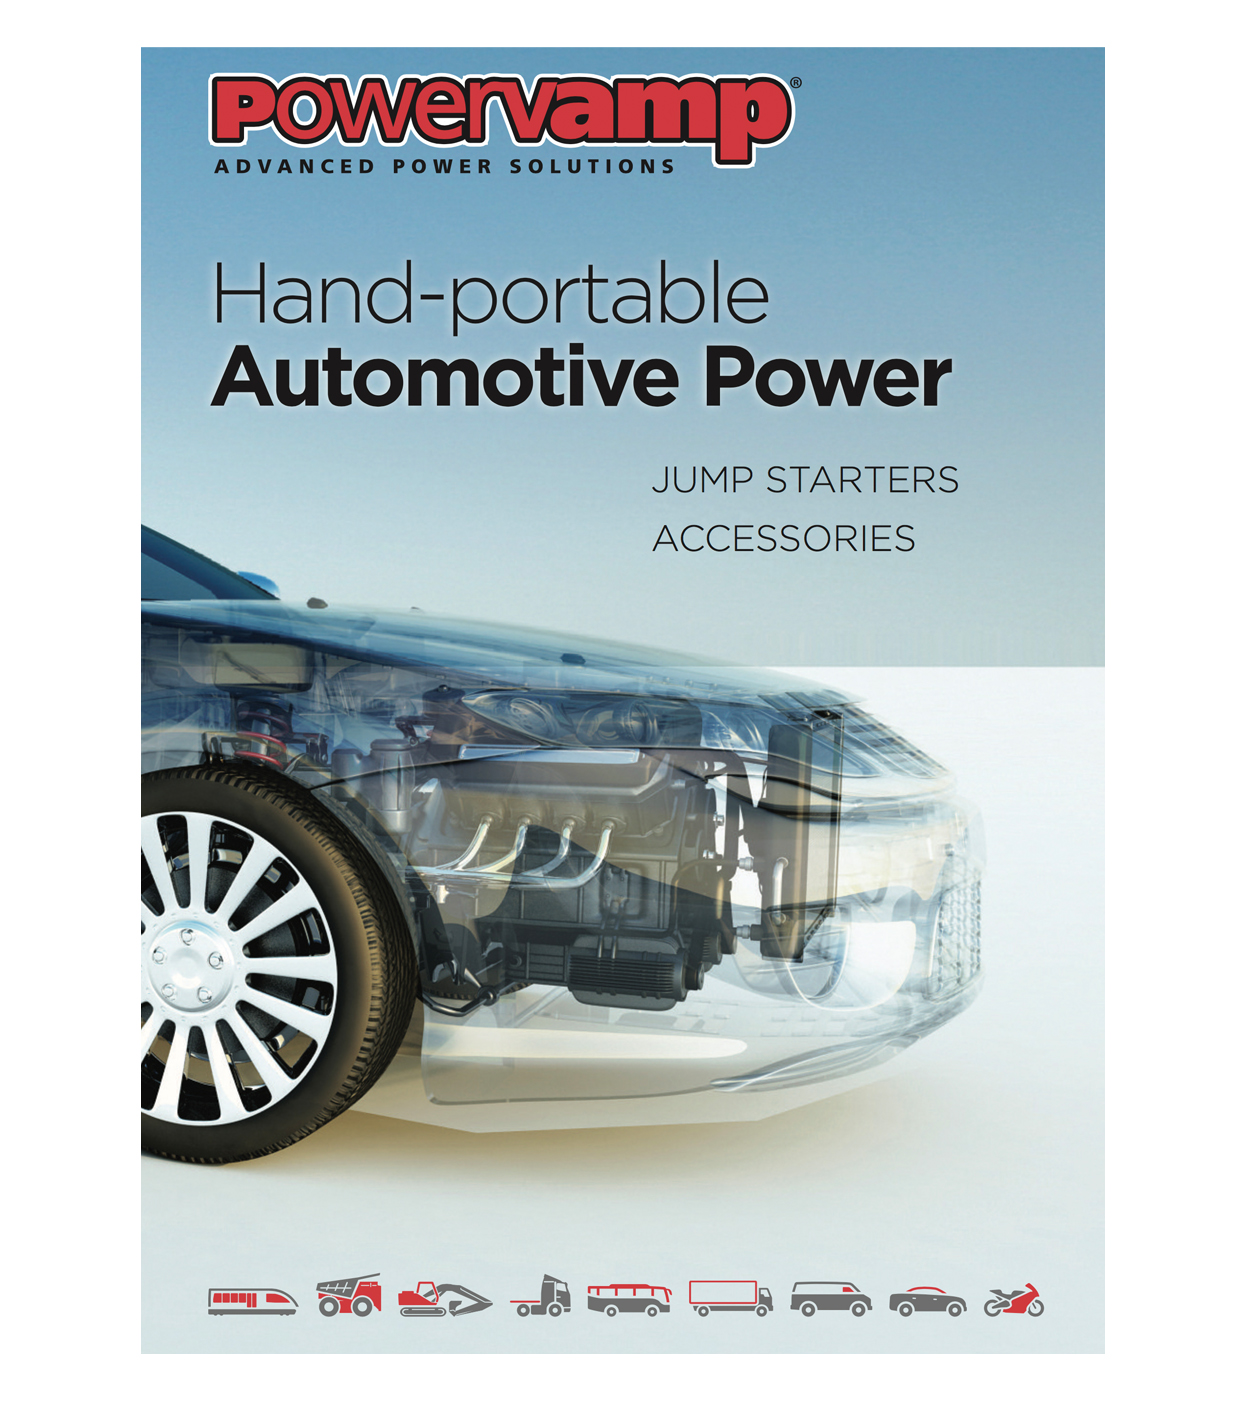 Powervamp automotive power brochure cover